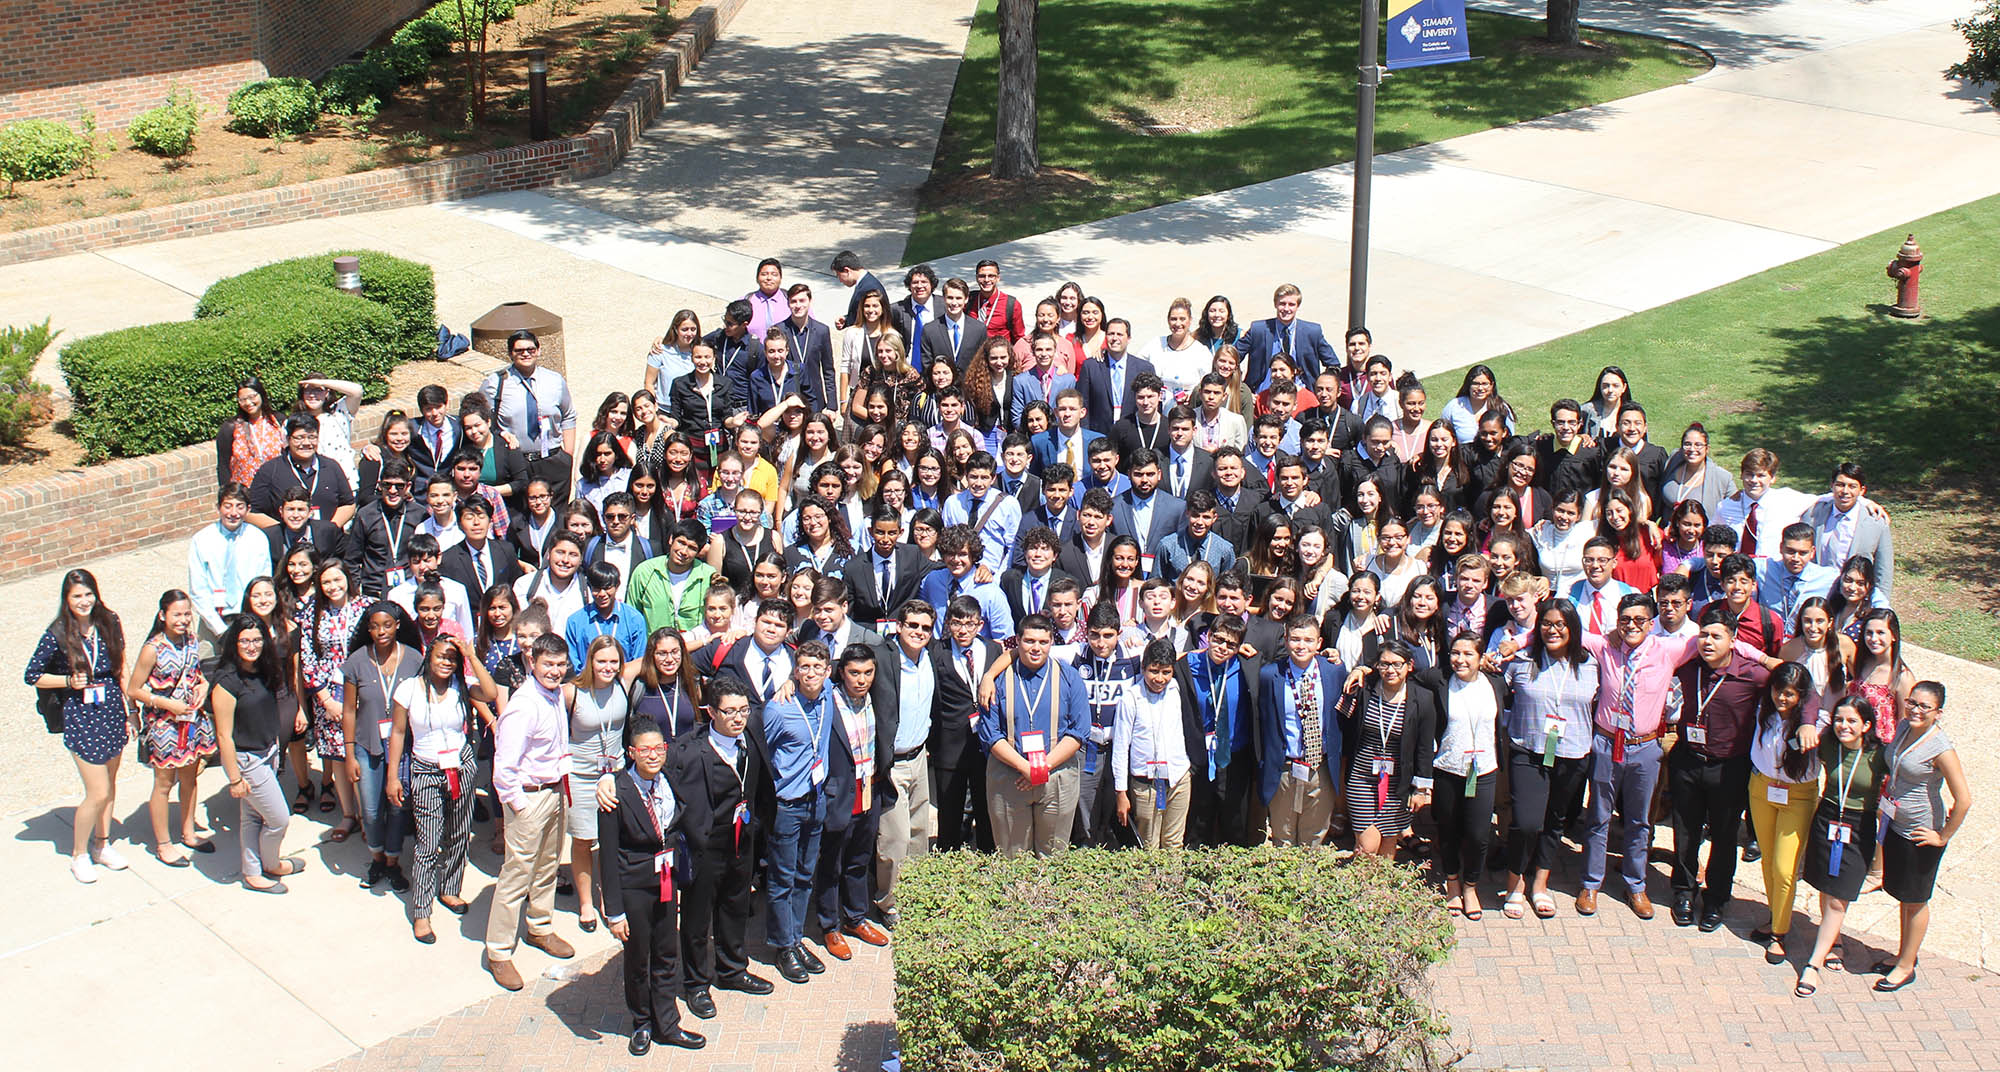 2018 Texas LDZ students on St. Mary's campus